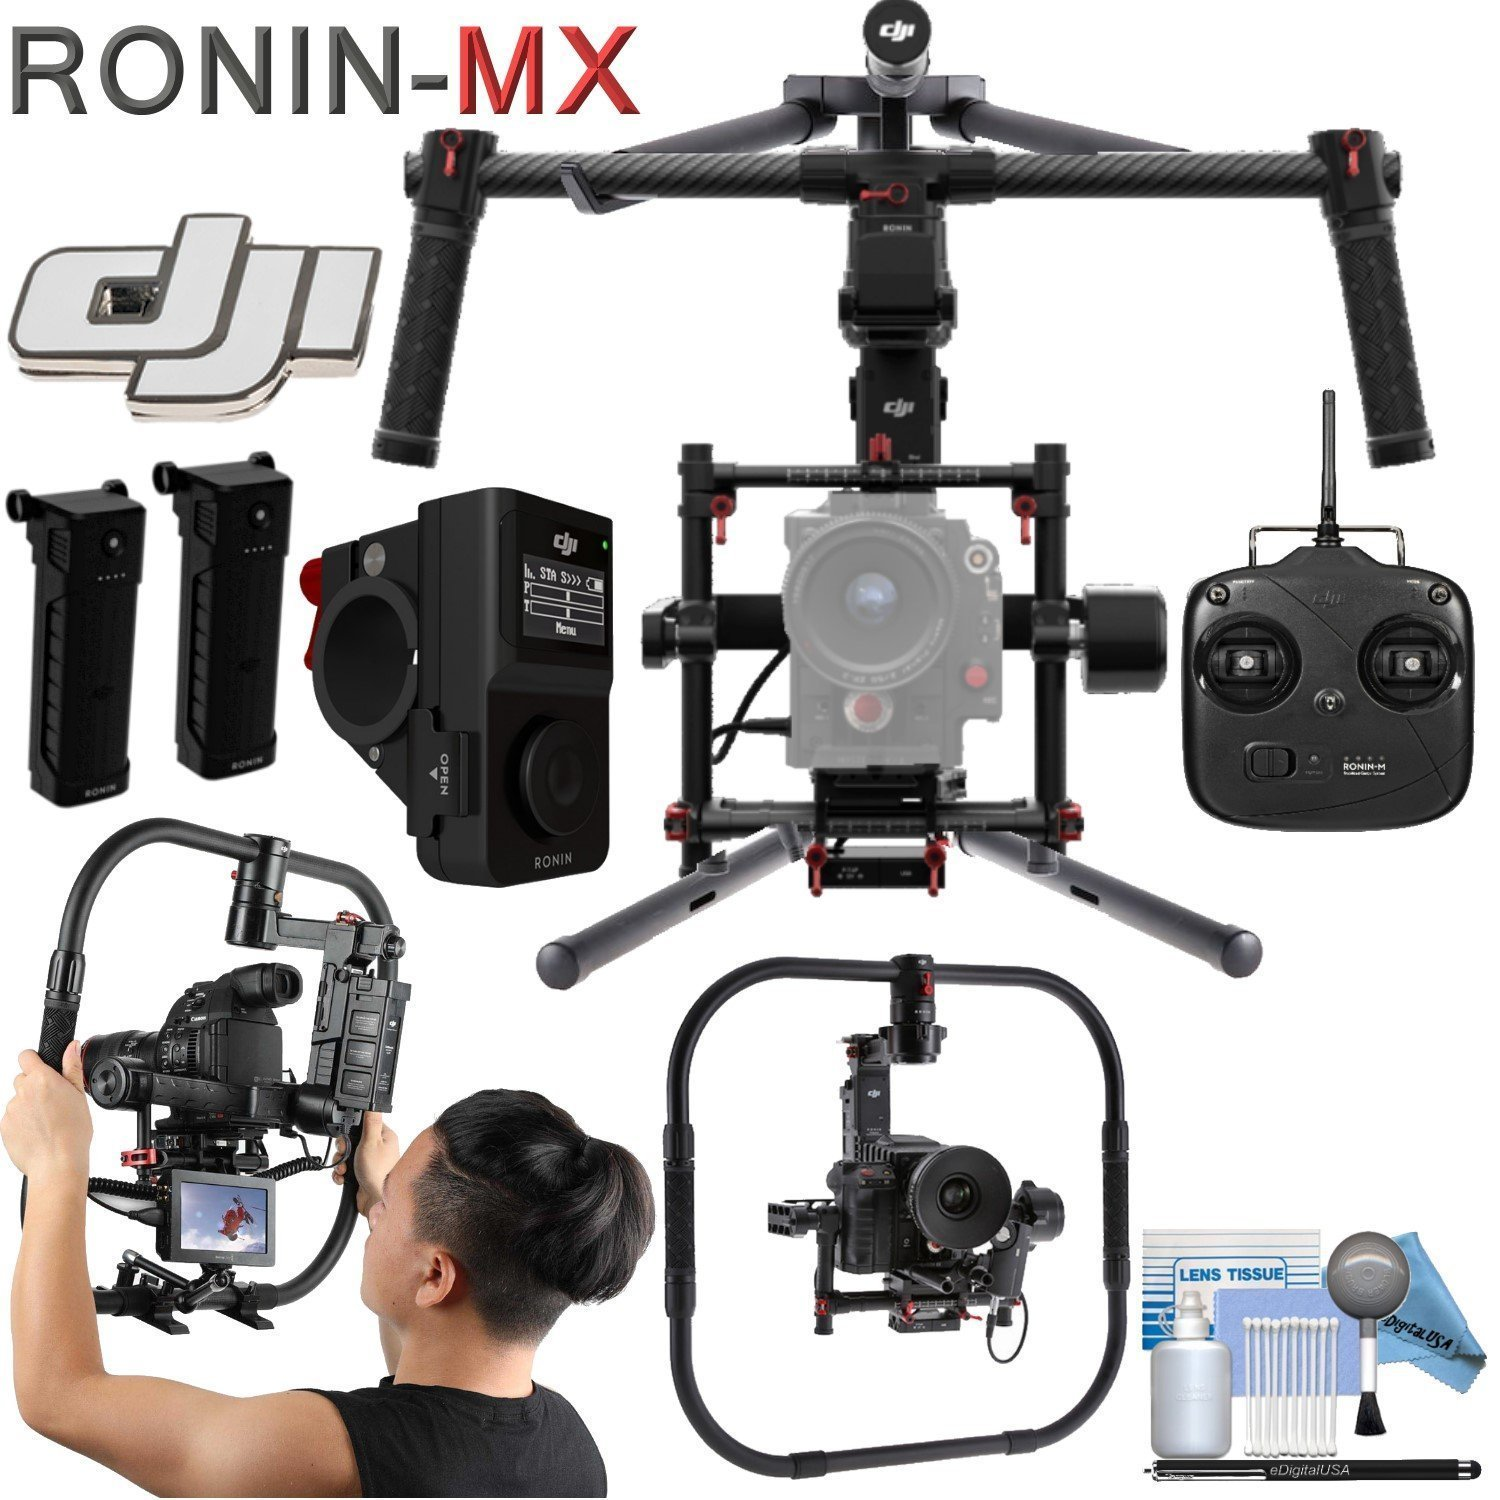 DJI Ronin-MX 3-Axis Gimbal Stabilizer Pro Travel Bundle: Includes, DJI Grip for Ronin-MX, Wireless Thumb Controller and more...